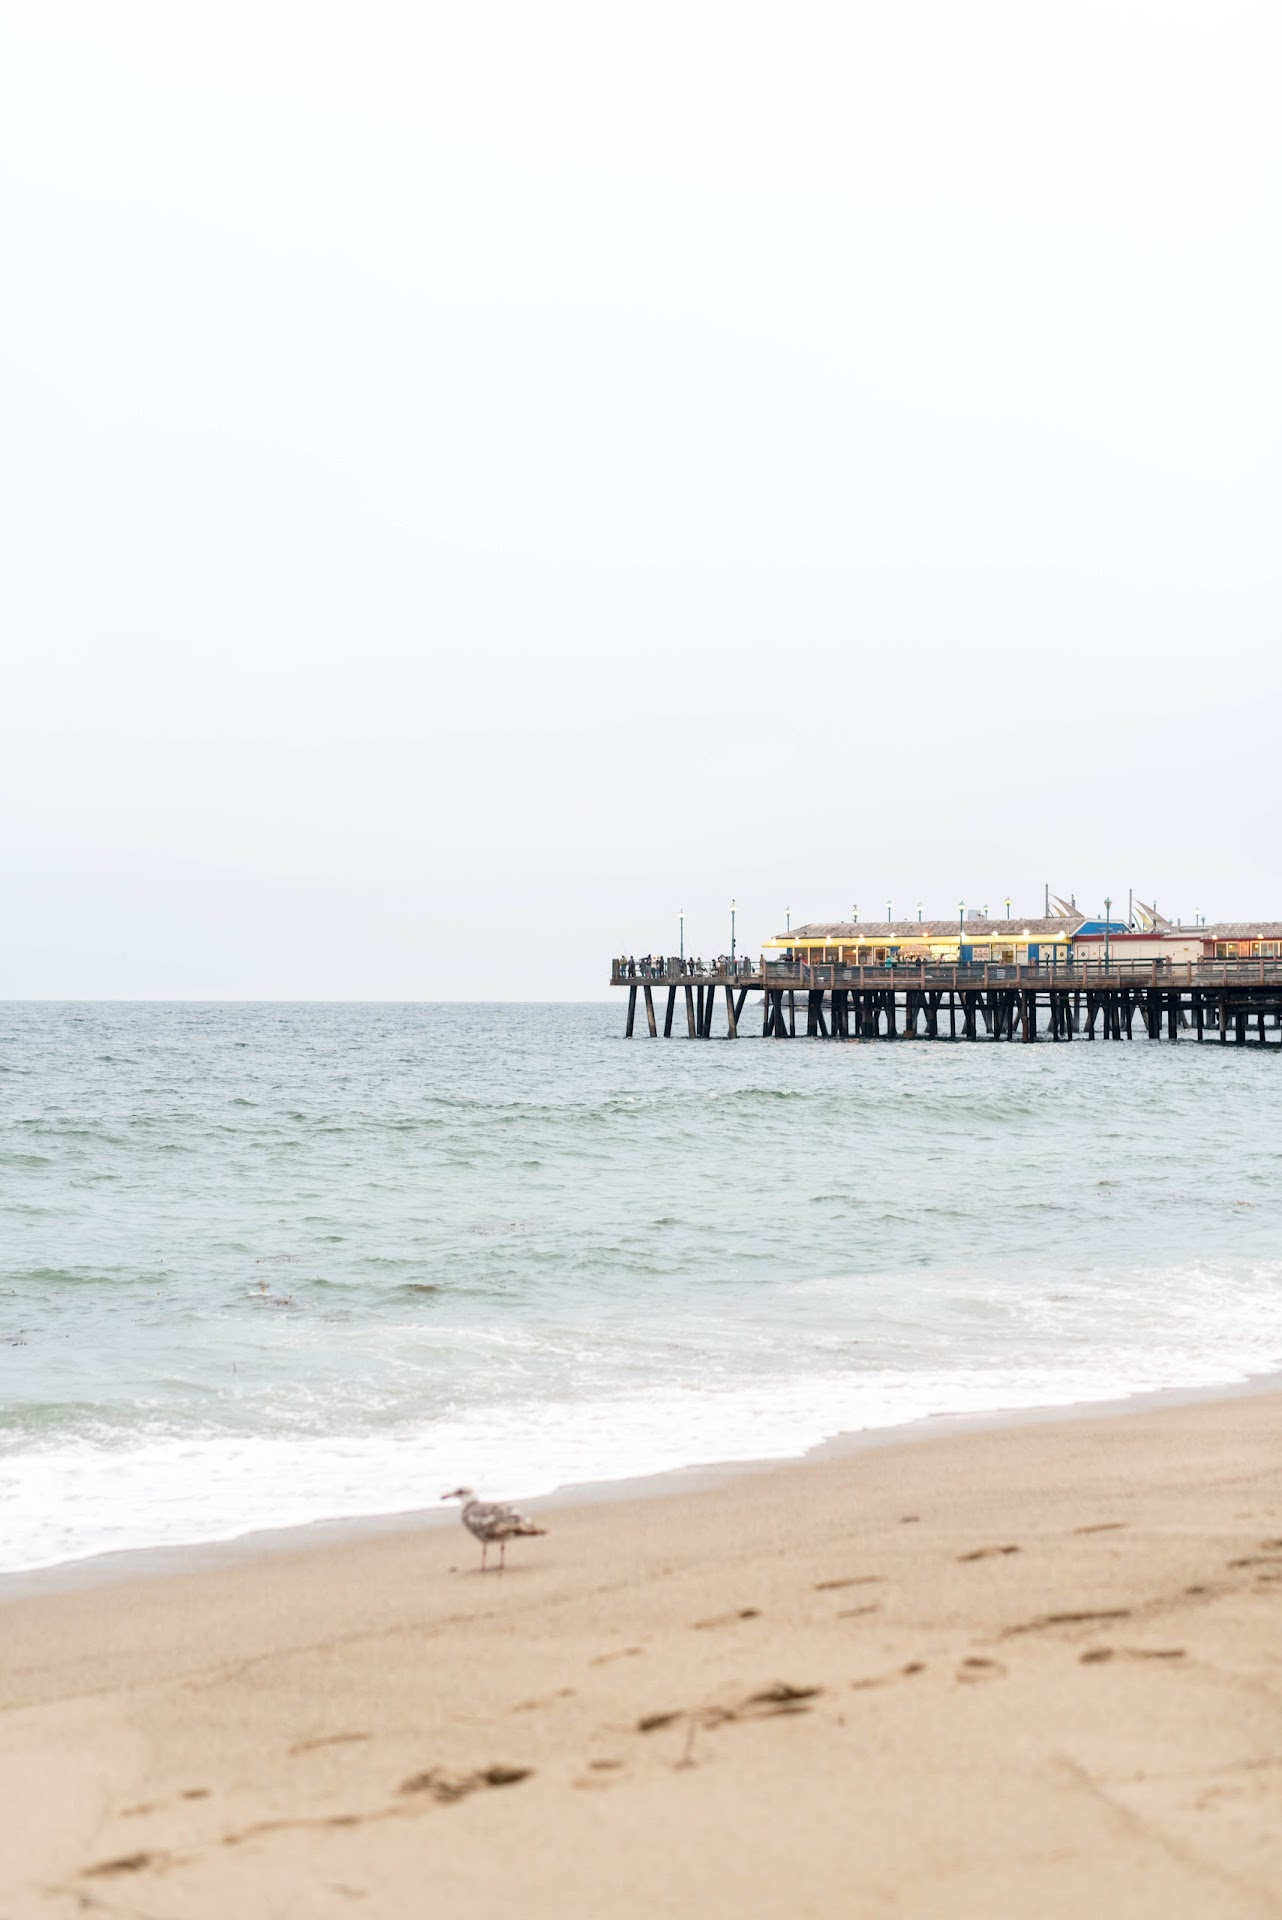 pier, things to do in torrance, southern california, socal, socal beachers, less crowded, things to do in torrance